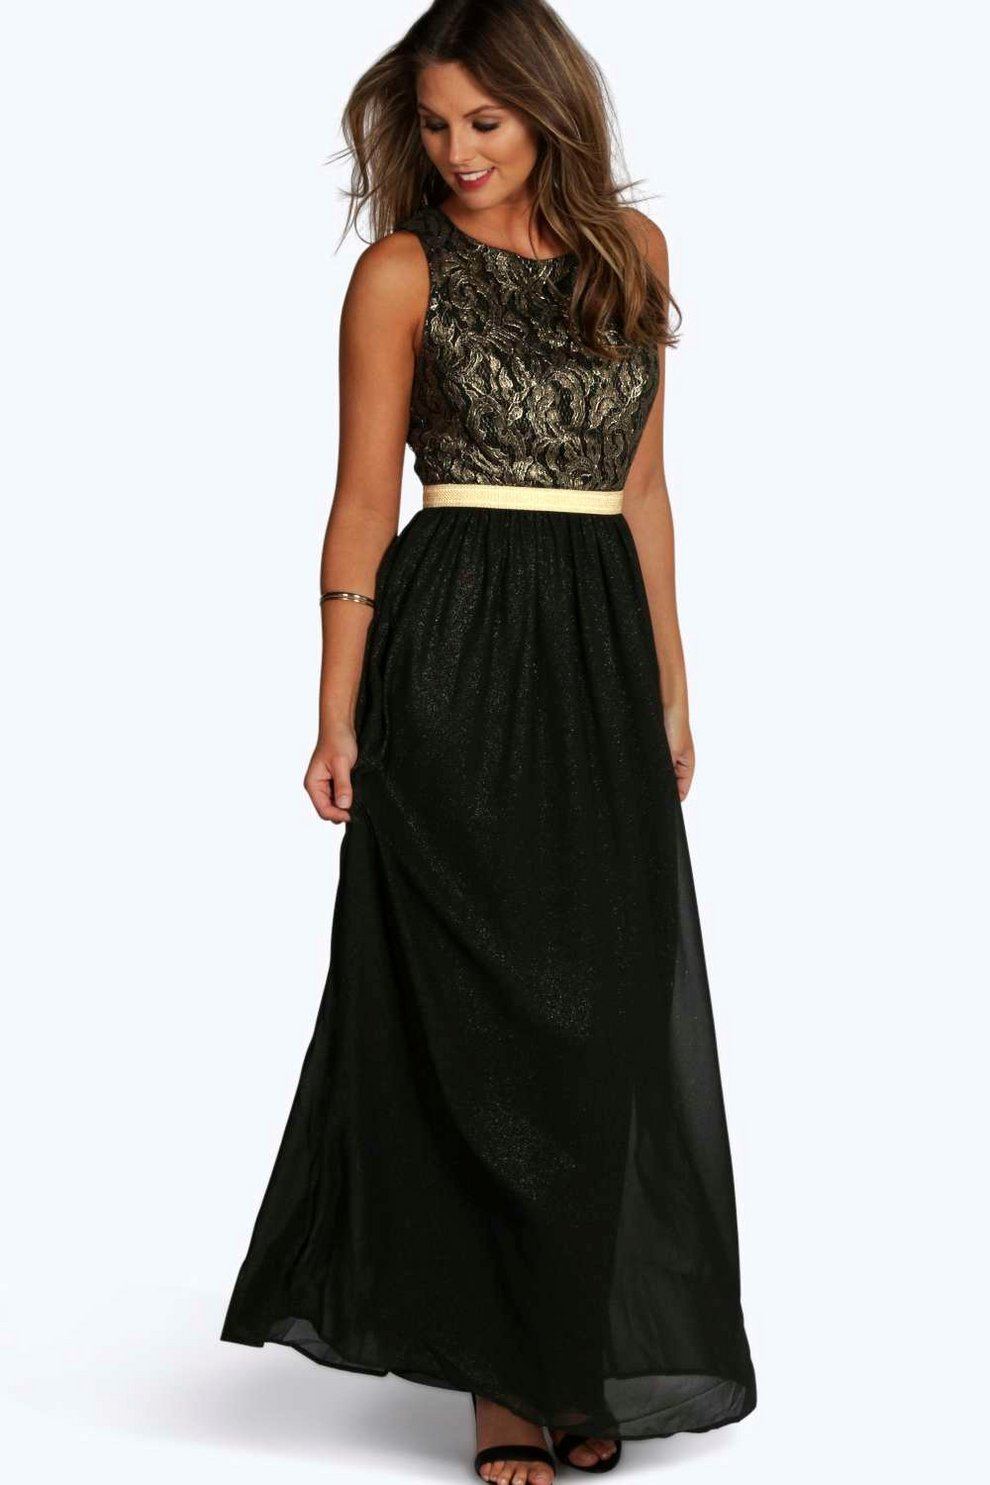 000c4802209 Womens Black Boutique Lace   Metallic Maxi Dress